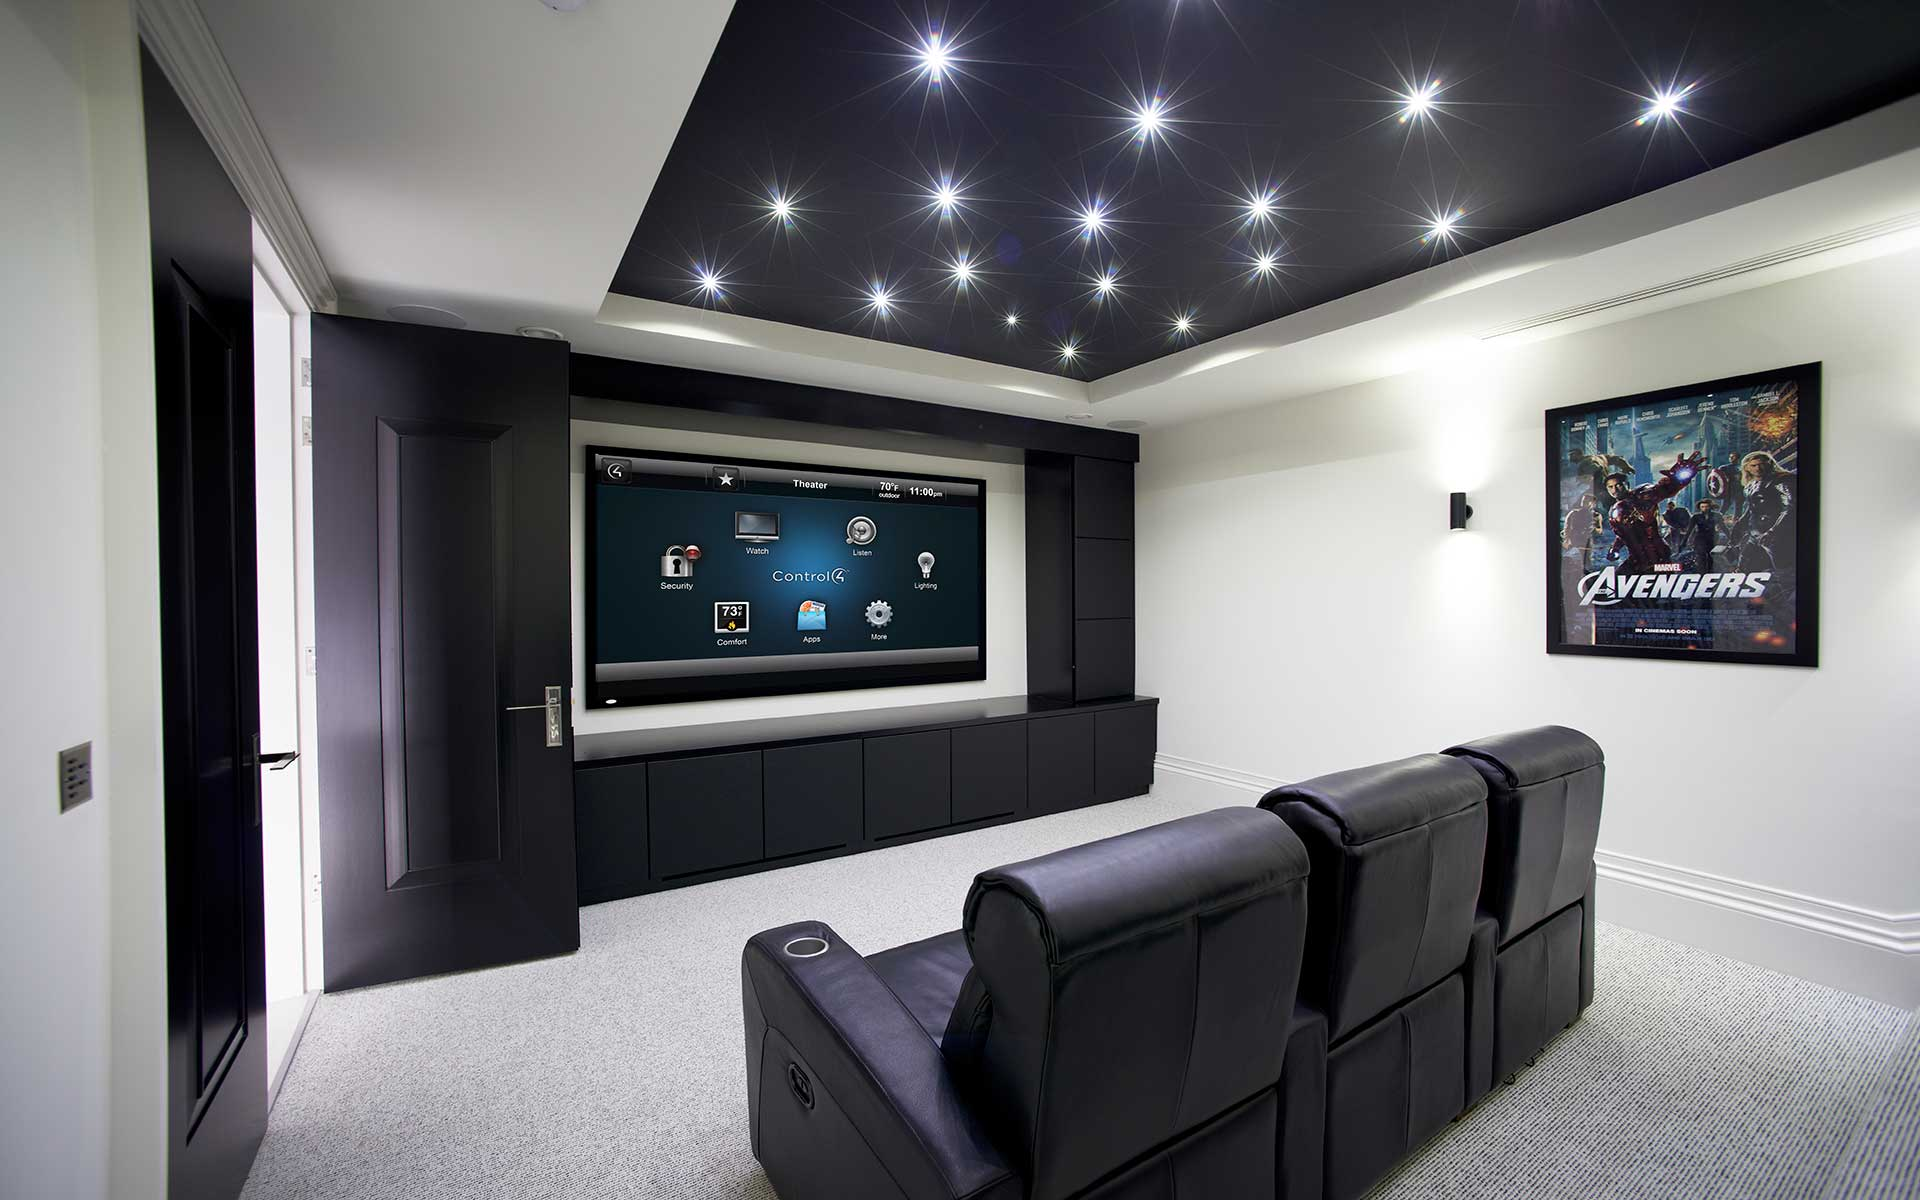 Control4 Lifestyle Home Theater